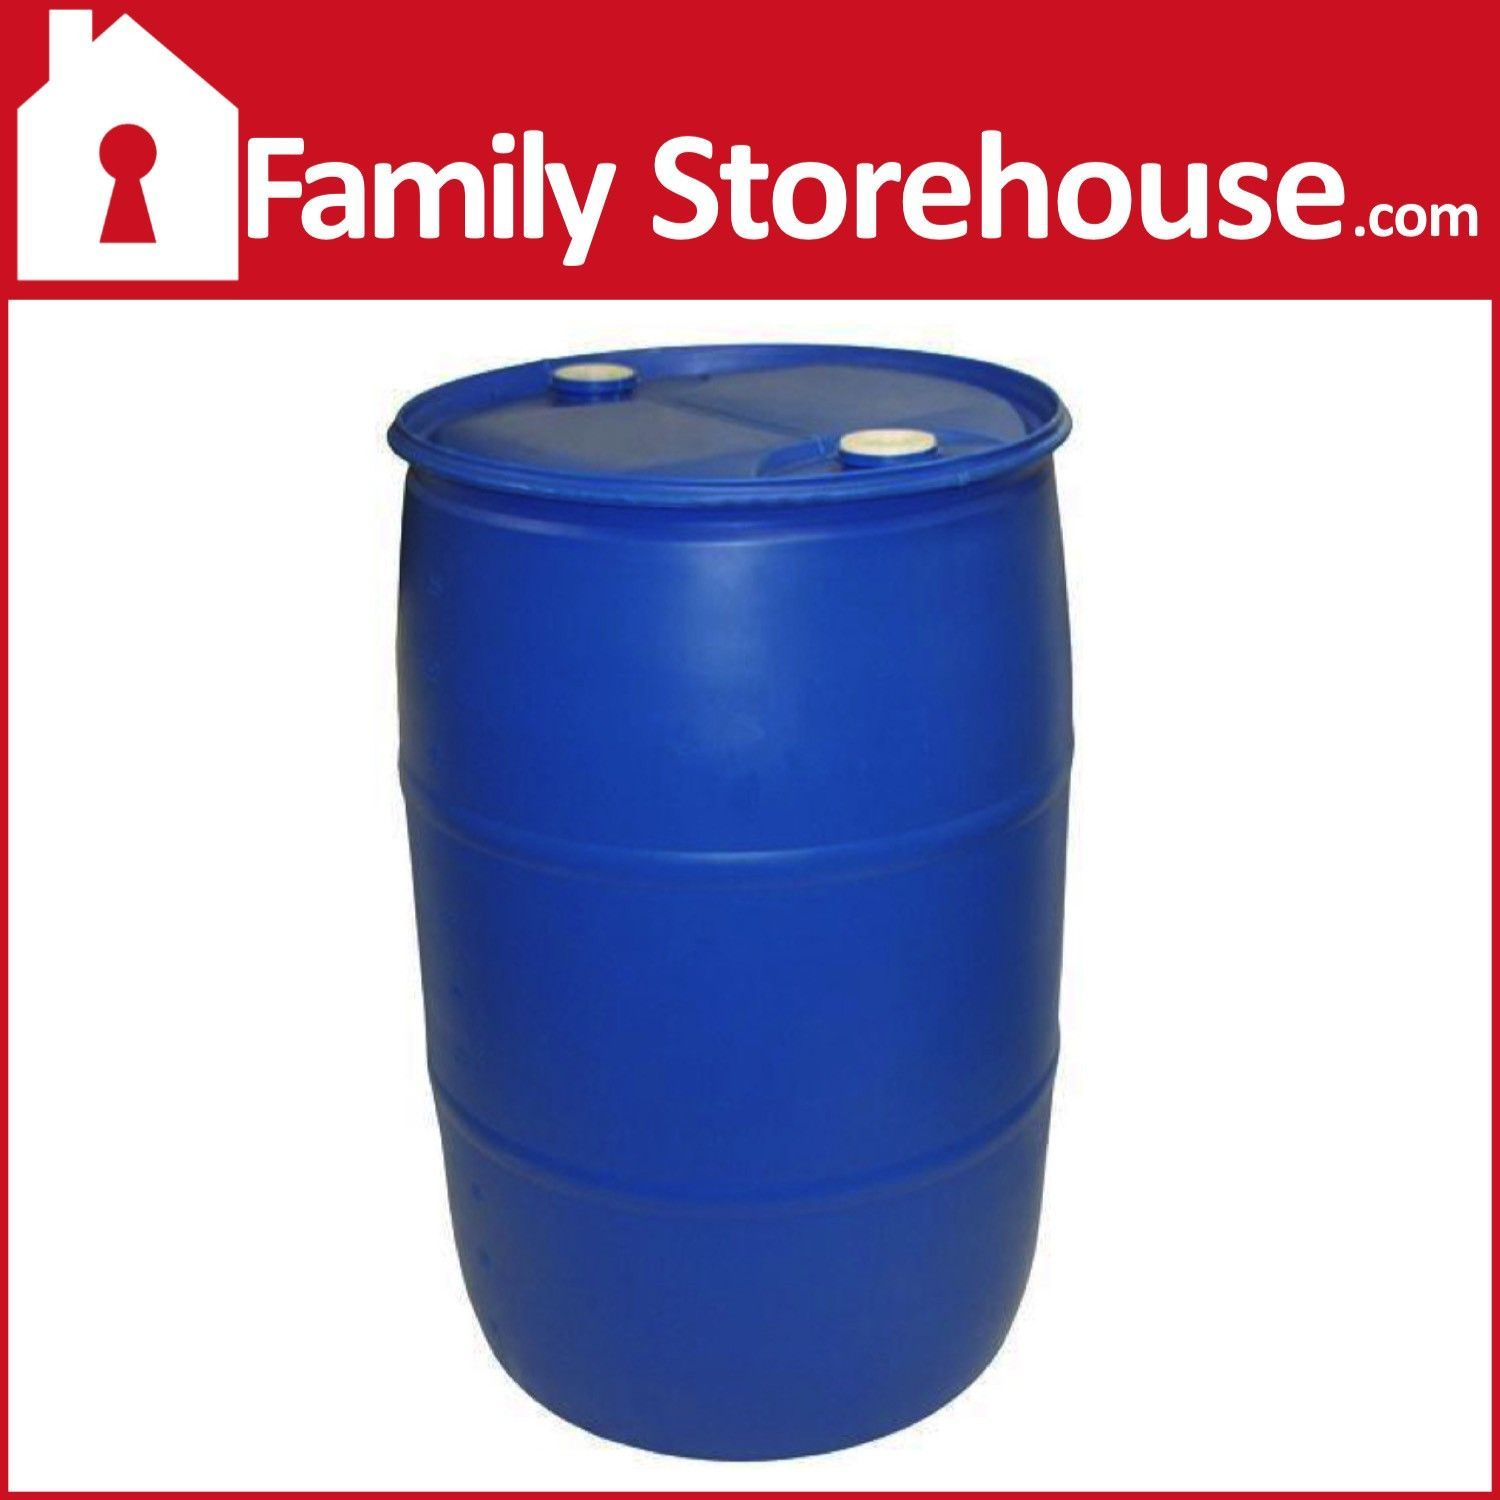 55 Gallon Water Barrel If You Are Searching For A Safe Cost Effective And High Quality Option For St 55 Gallon Water Barrel Water Barrel Survival Food Storage